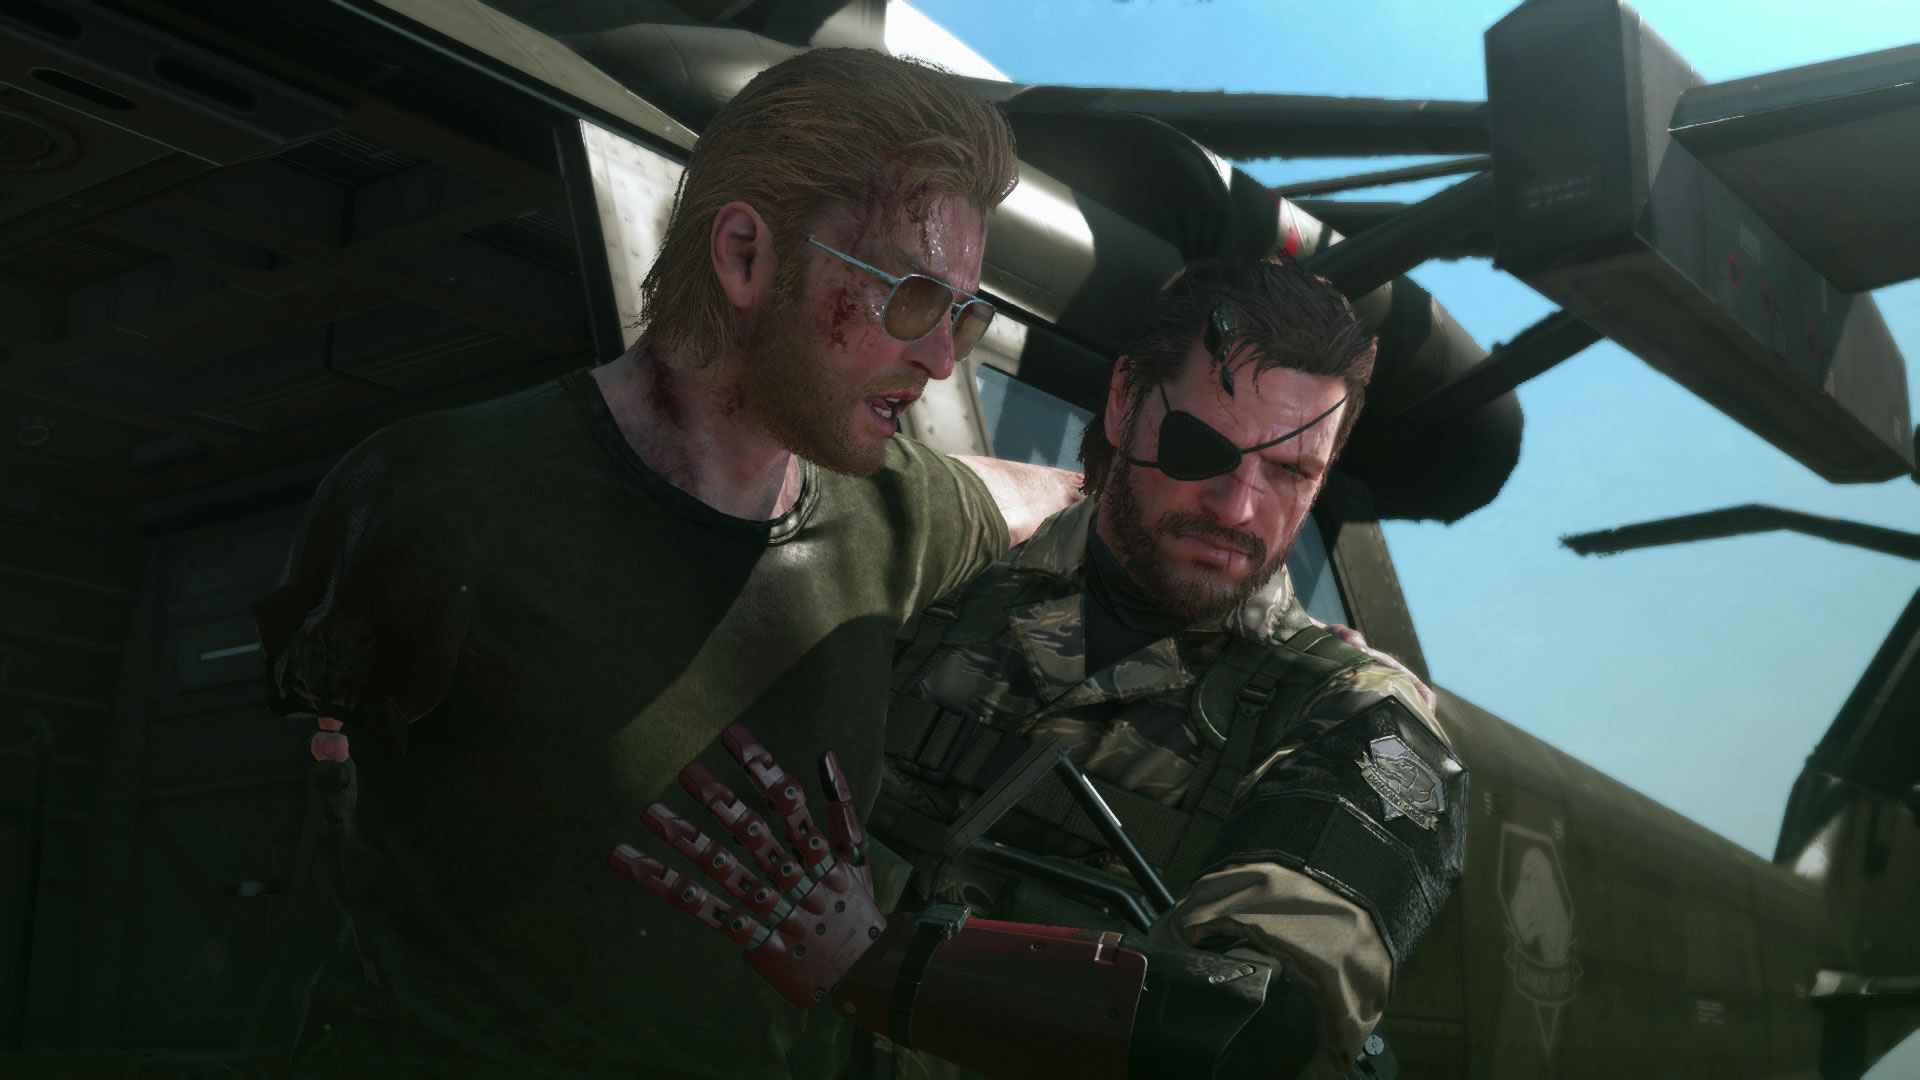 Metal-Gear-Solid-V-The-Phantom-Pain-E3-2015-Screen-Big-Boss-and-Kaz